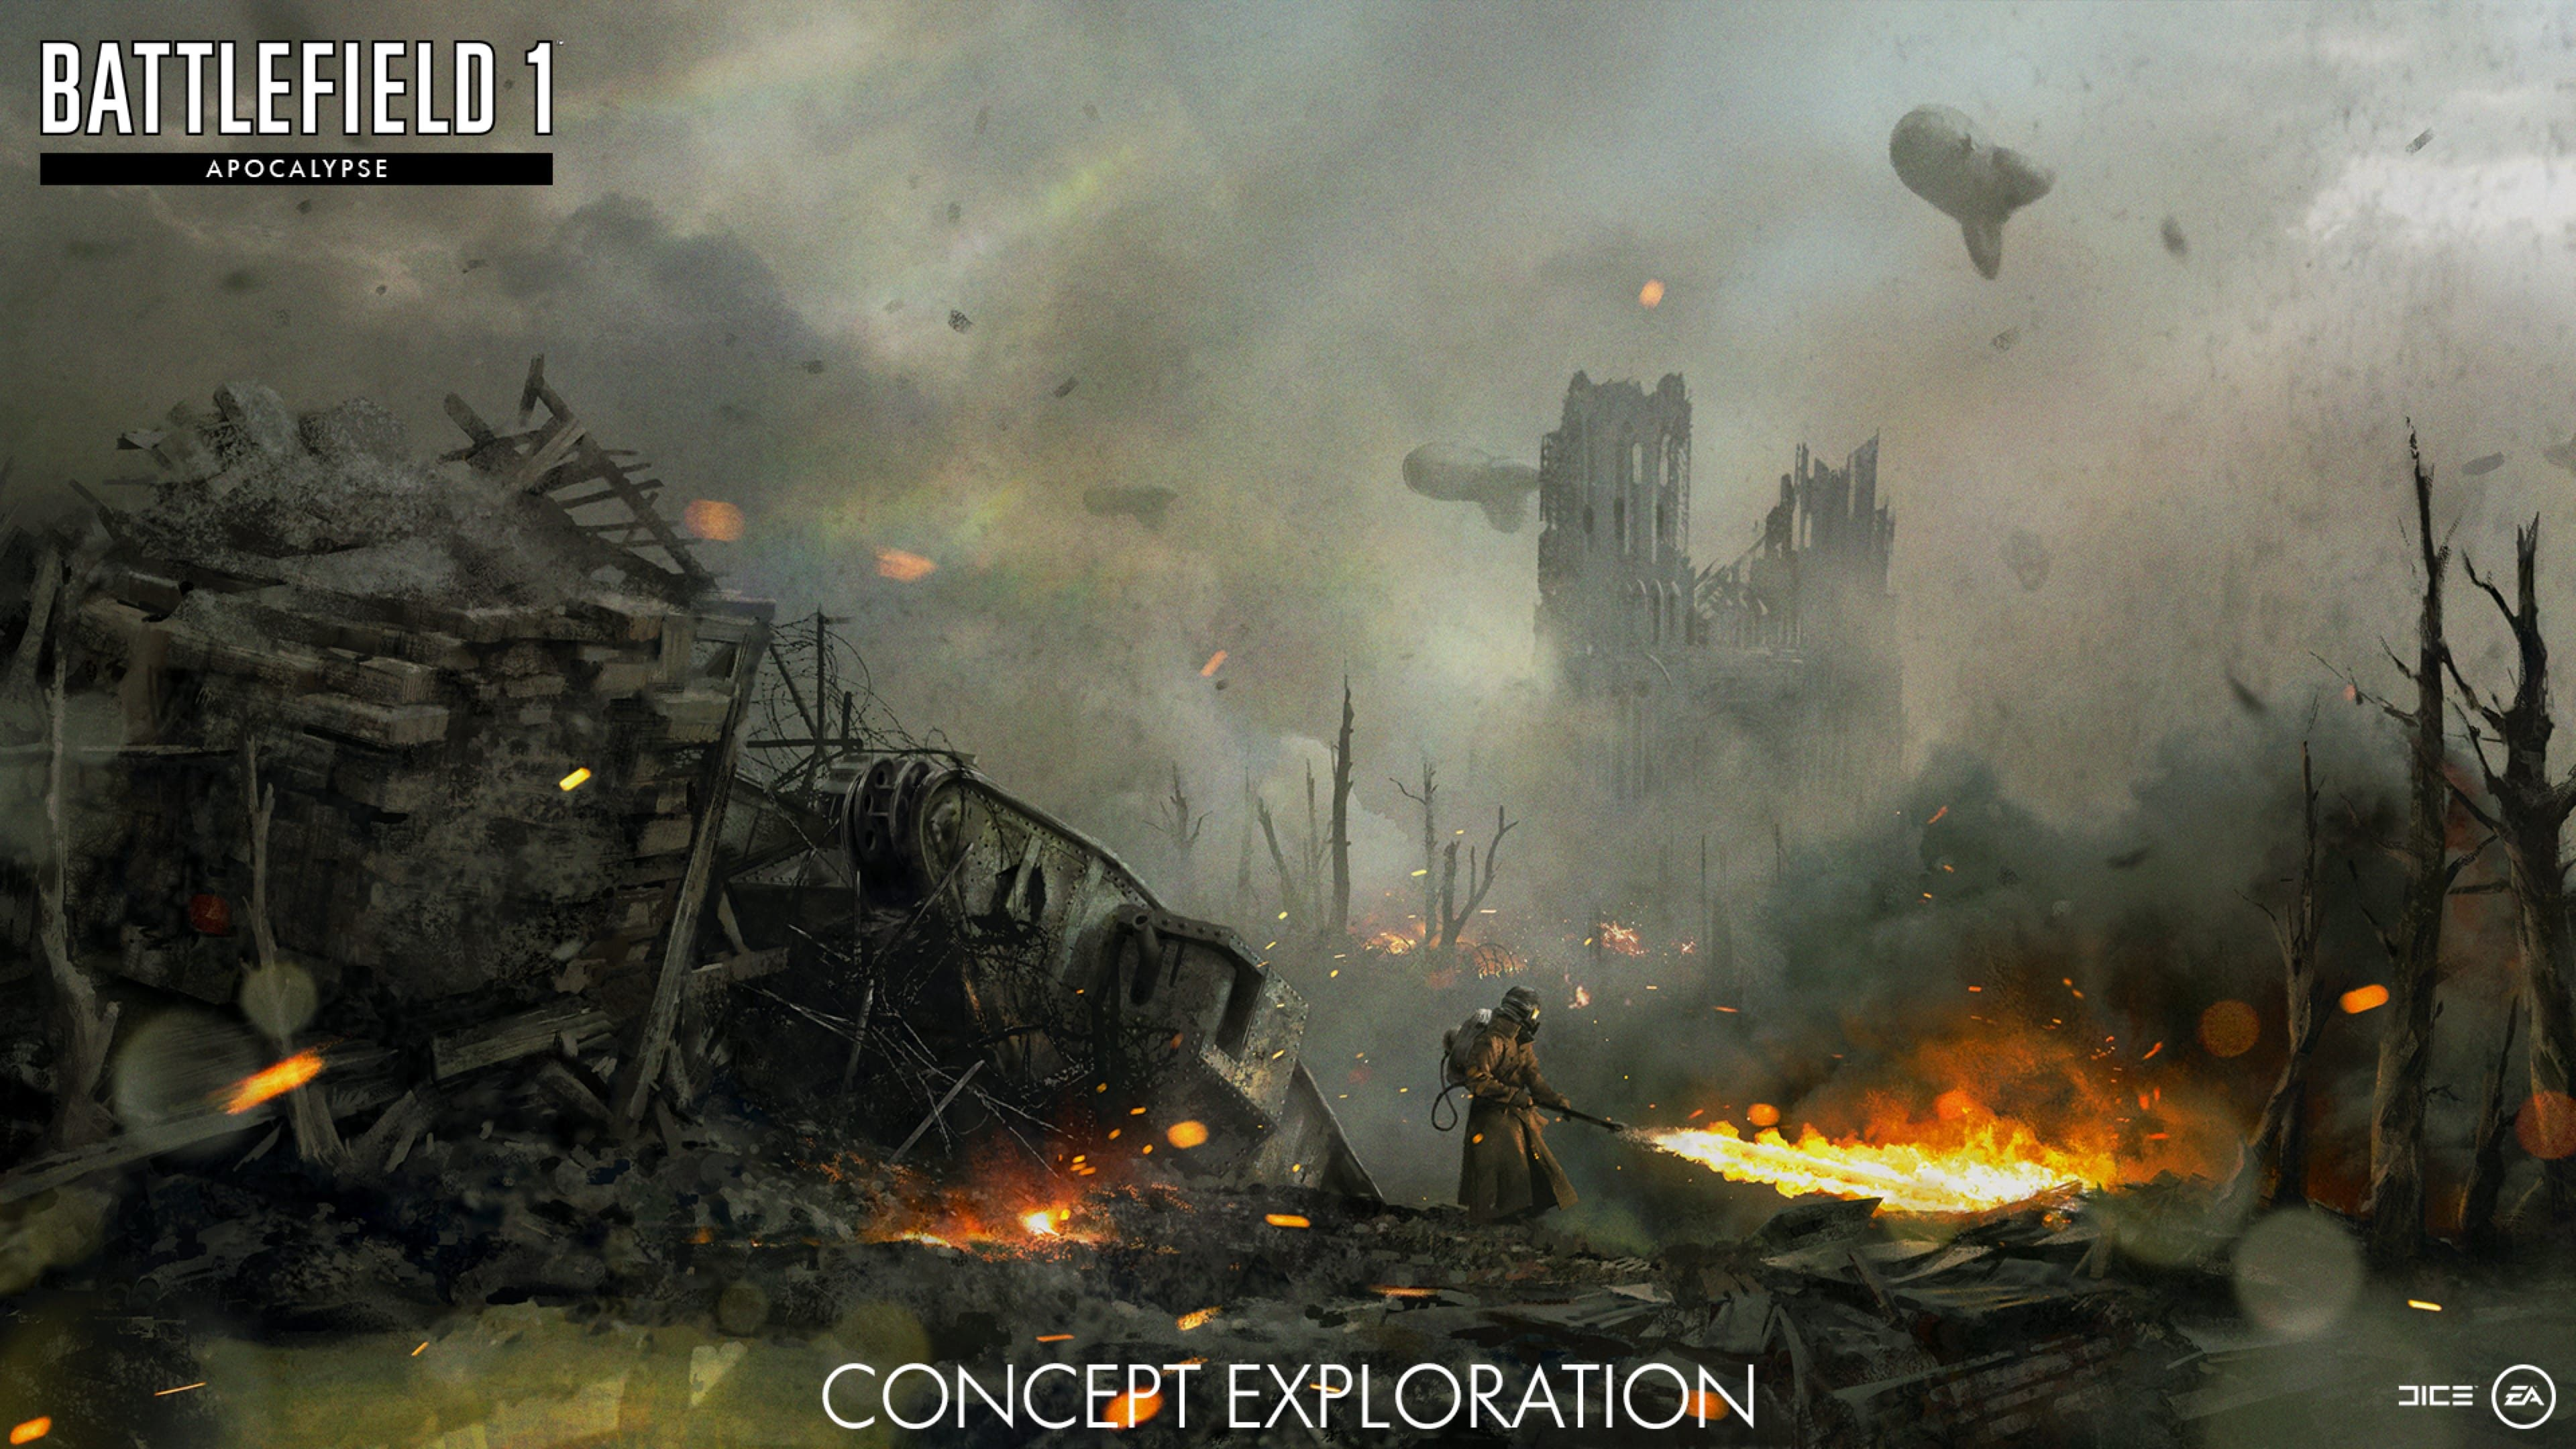 Battlefield 1 S Final Expansion Apocalypse Launches In February